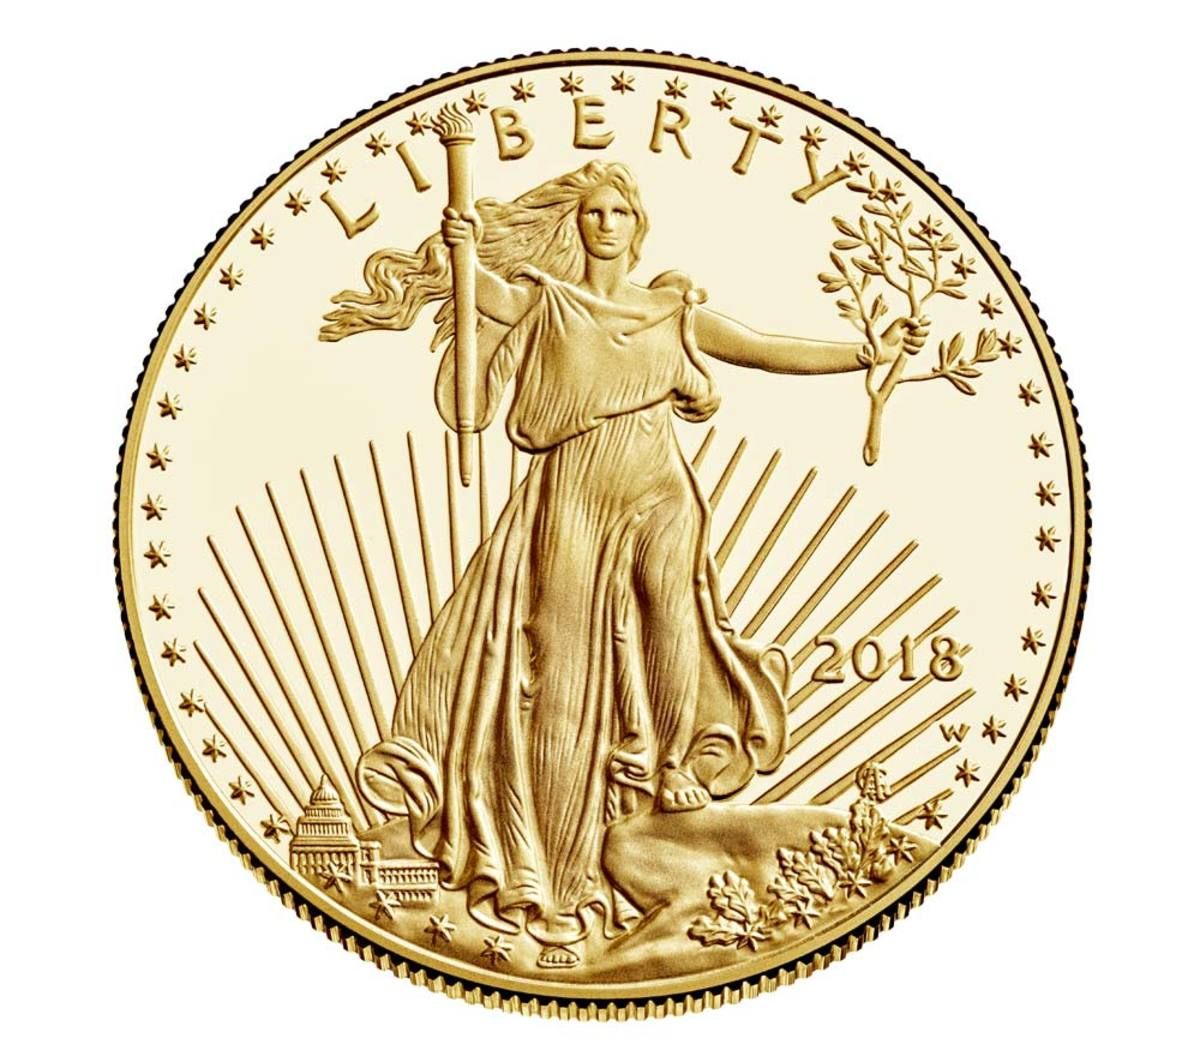 Shown is an American Eagle 2018 One ounce Gold Proof Coin. (Image courtesy of U.S. Mint.)